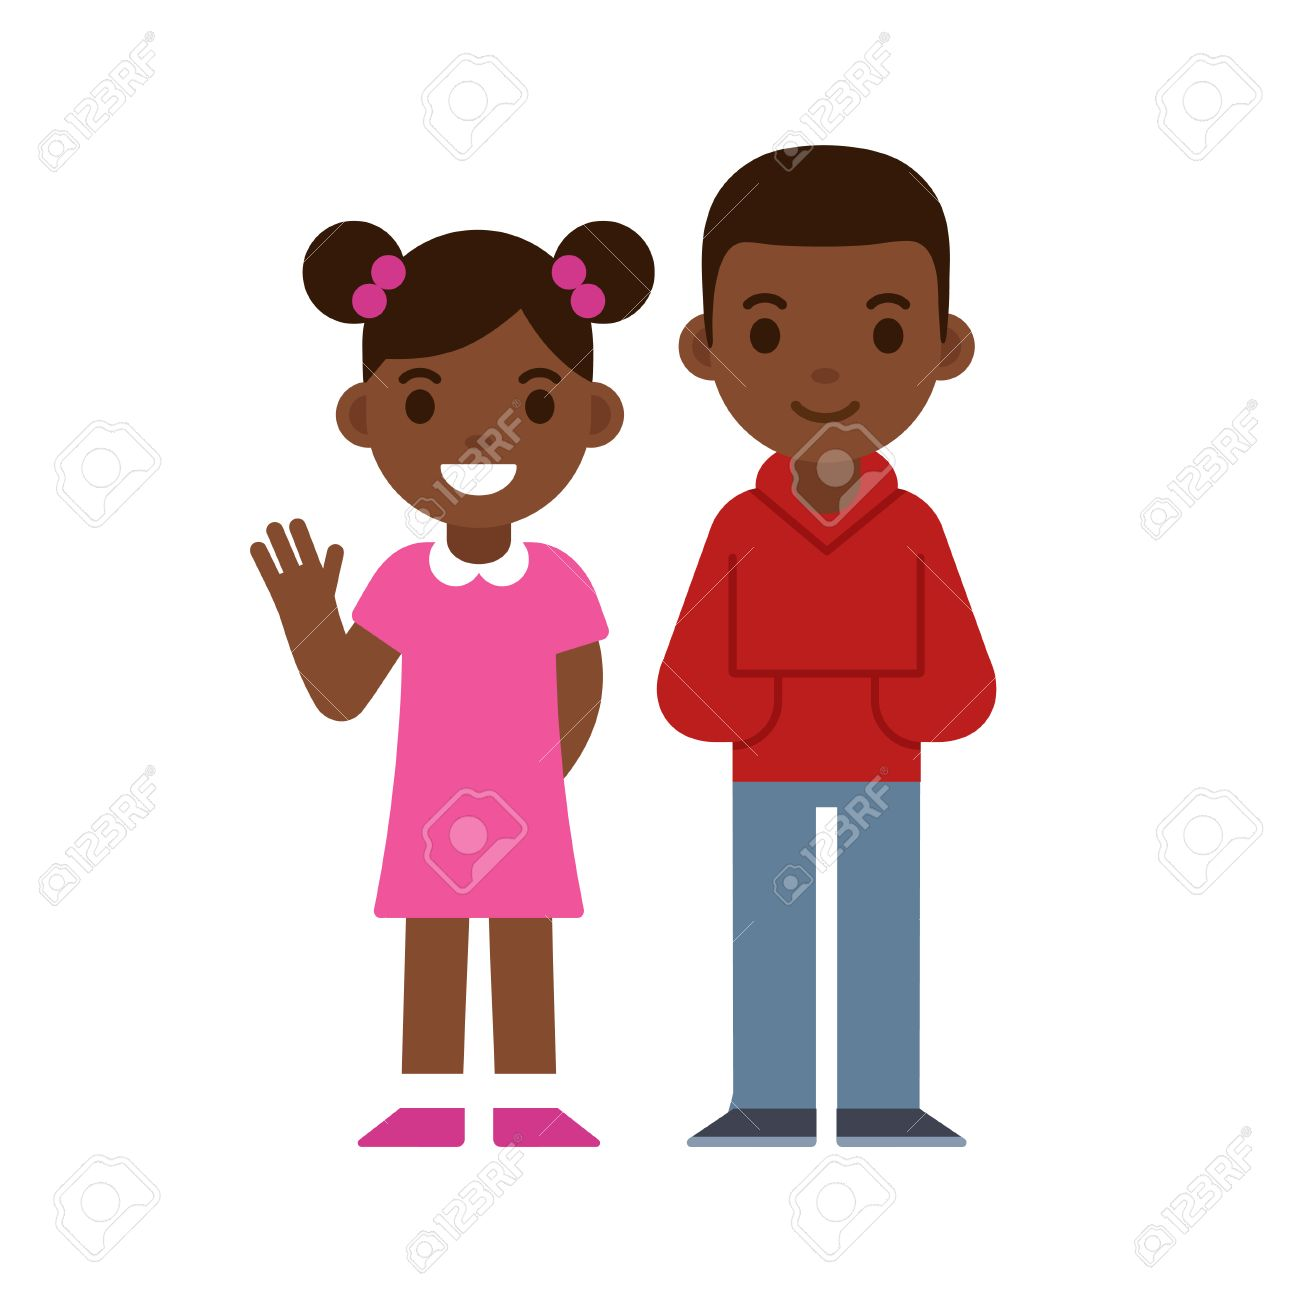 cute cartoon black children smiling and waving, boy and girl